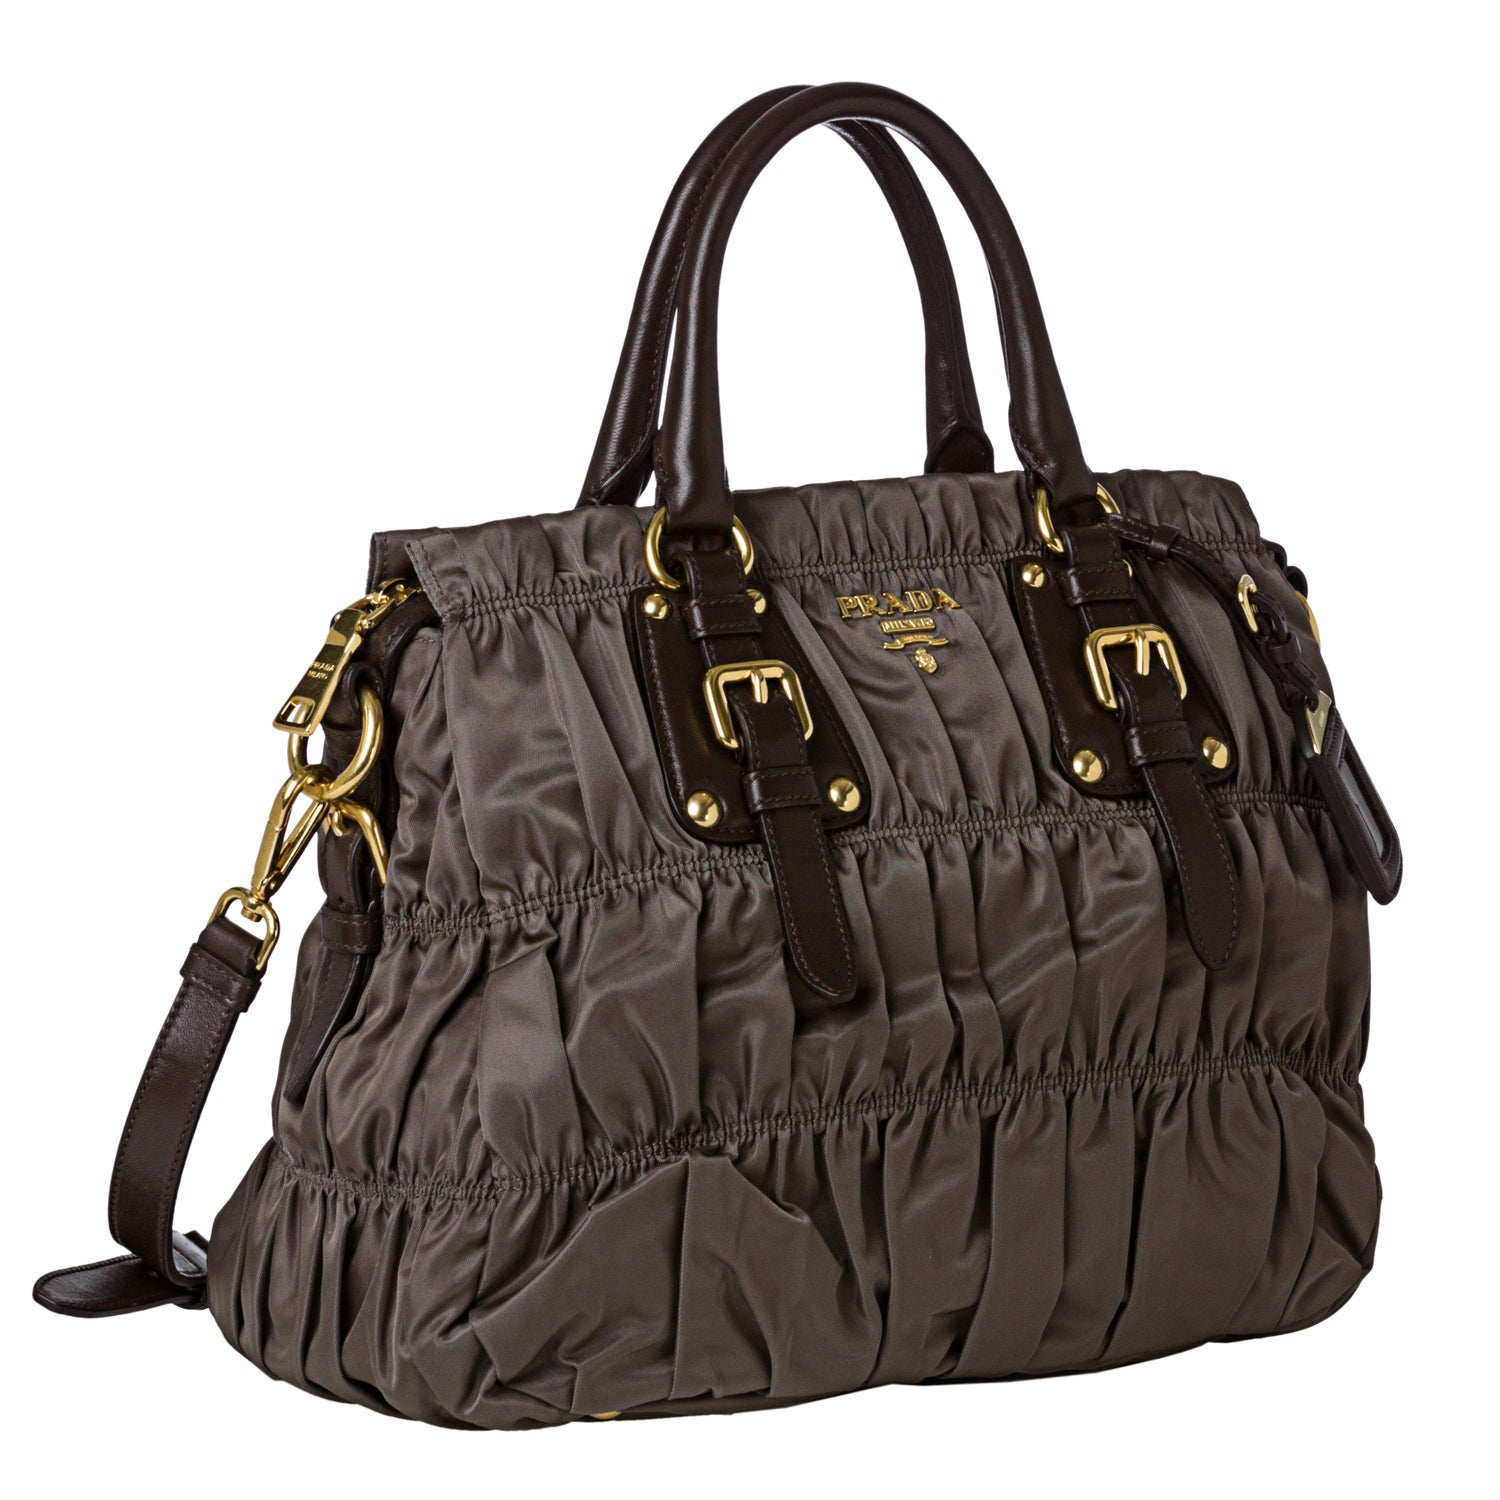 84bf00899e72 Used Prada Nylon Bags | Stanford Center for Opportunity Policy in ...